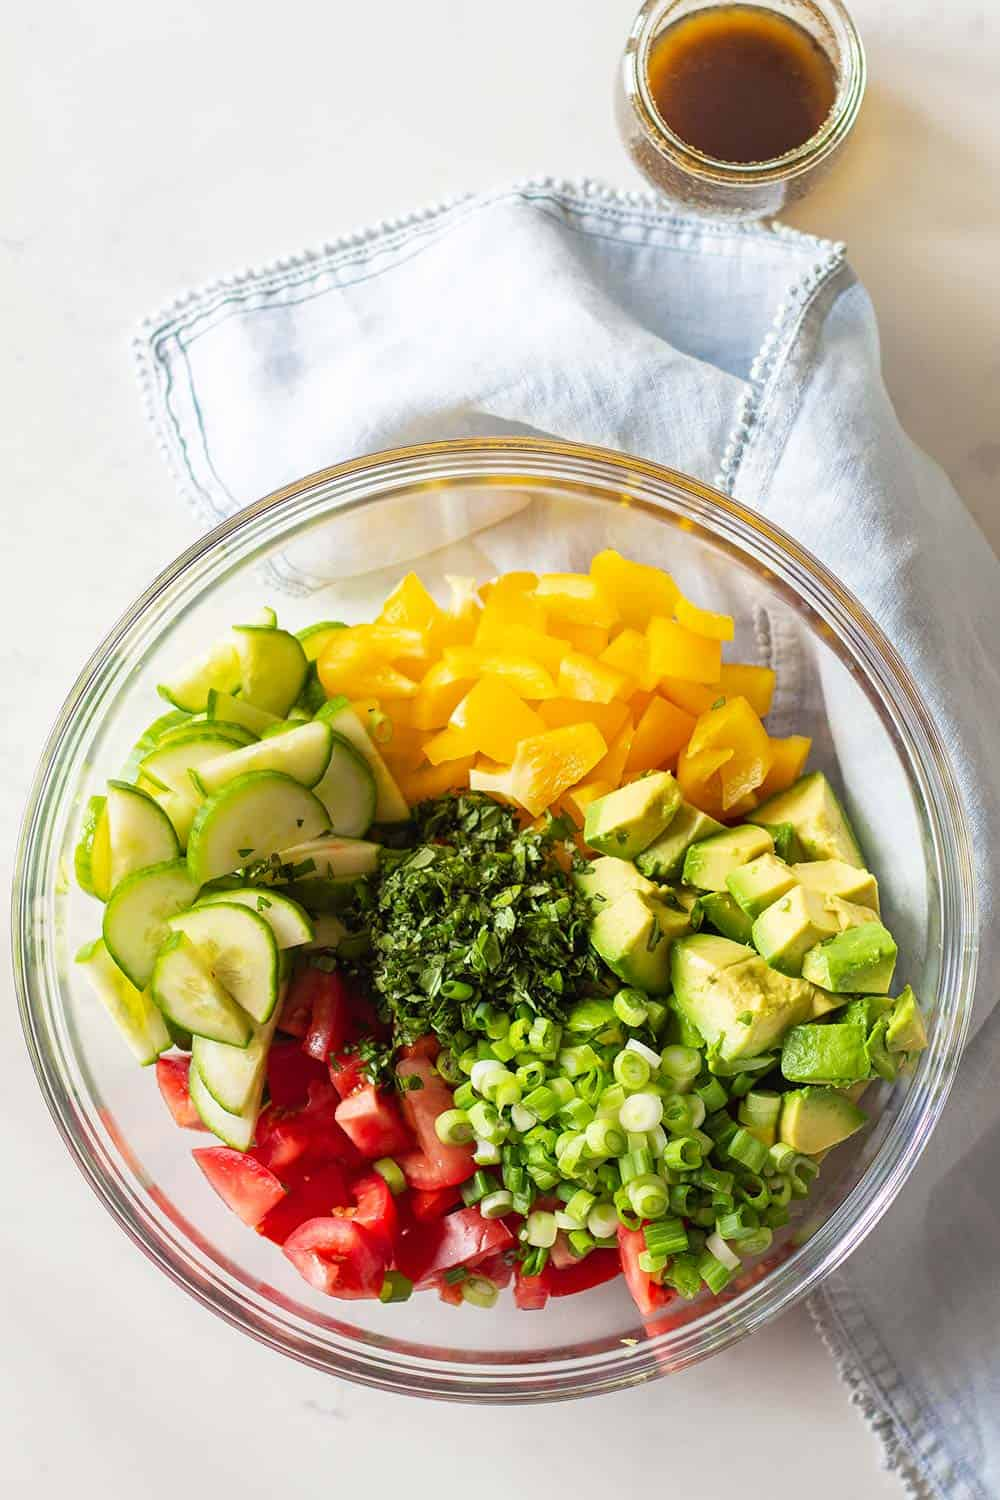 Cucumber Tomato Avocado Salad ingredients in a large glass bowl and balsamic vinaigrette in a separate glass jar